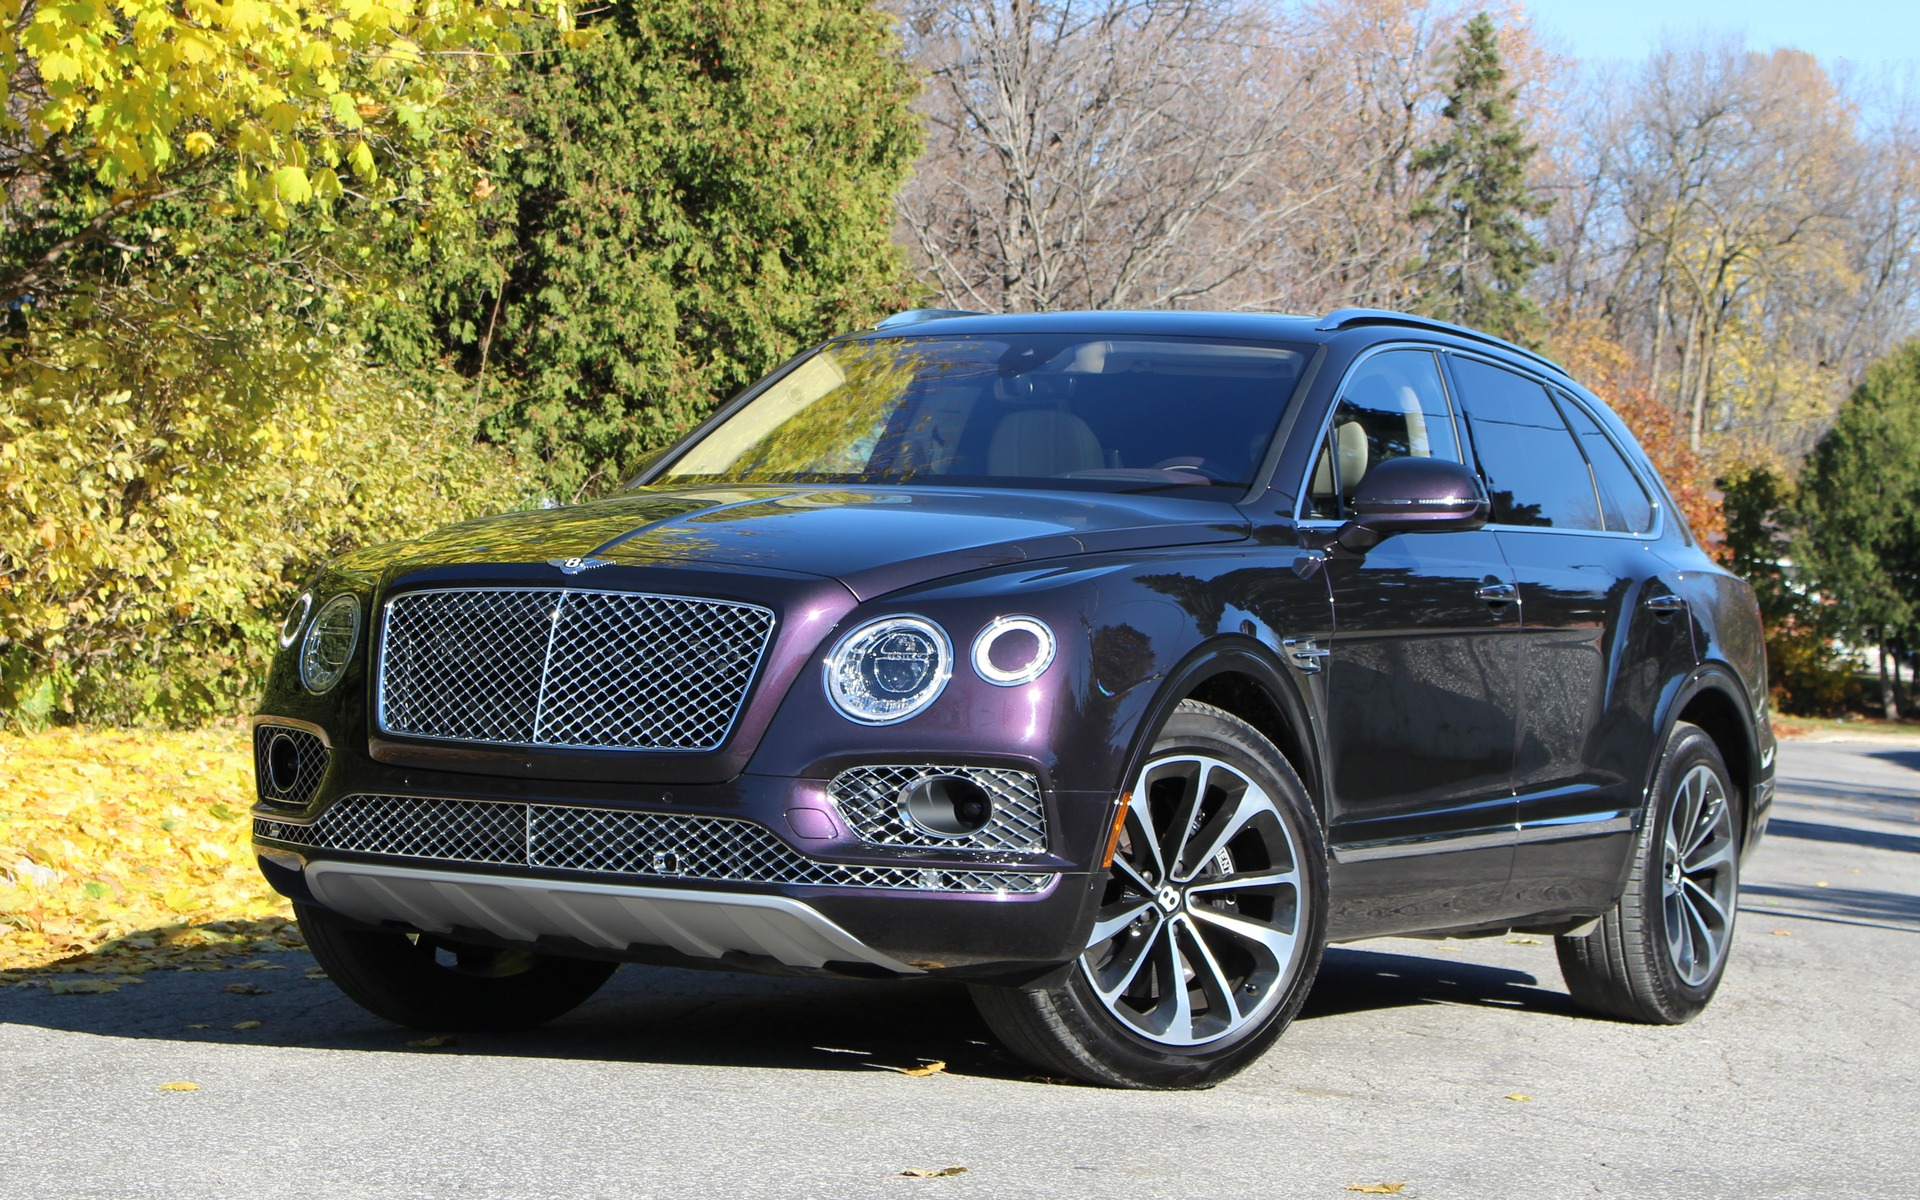 gt is price drive the bentley insider this speed worth test tag convertible truck business